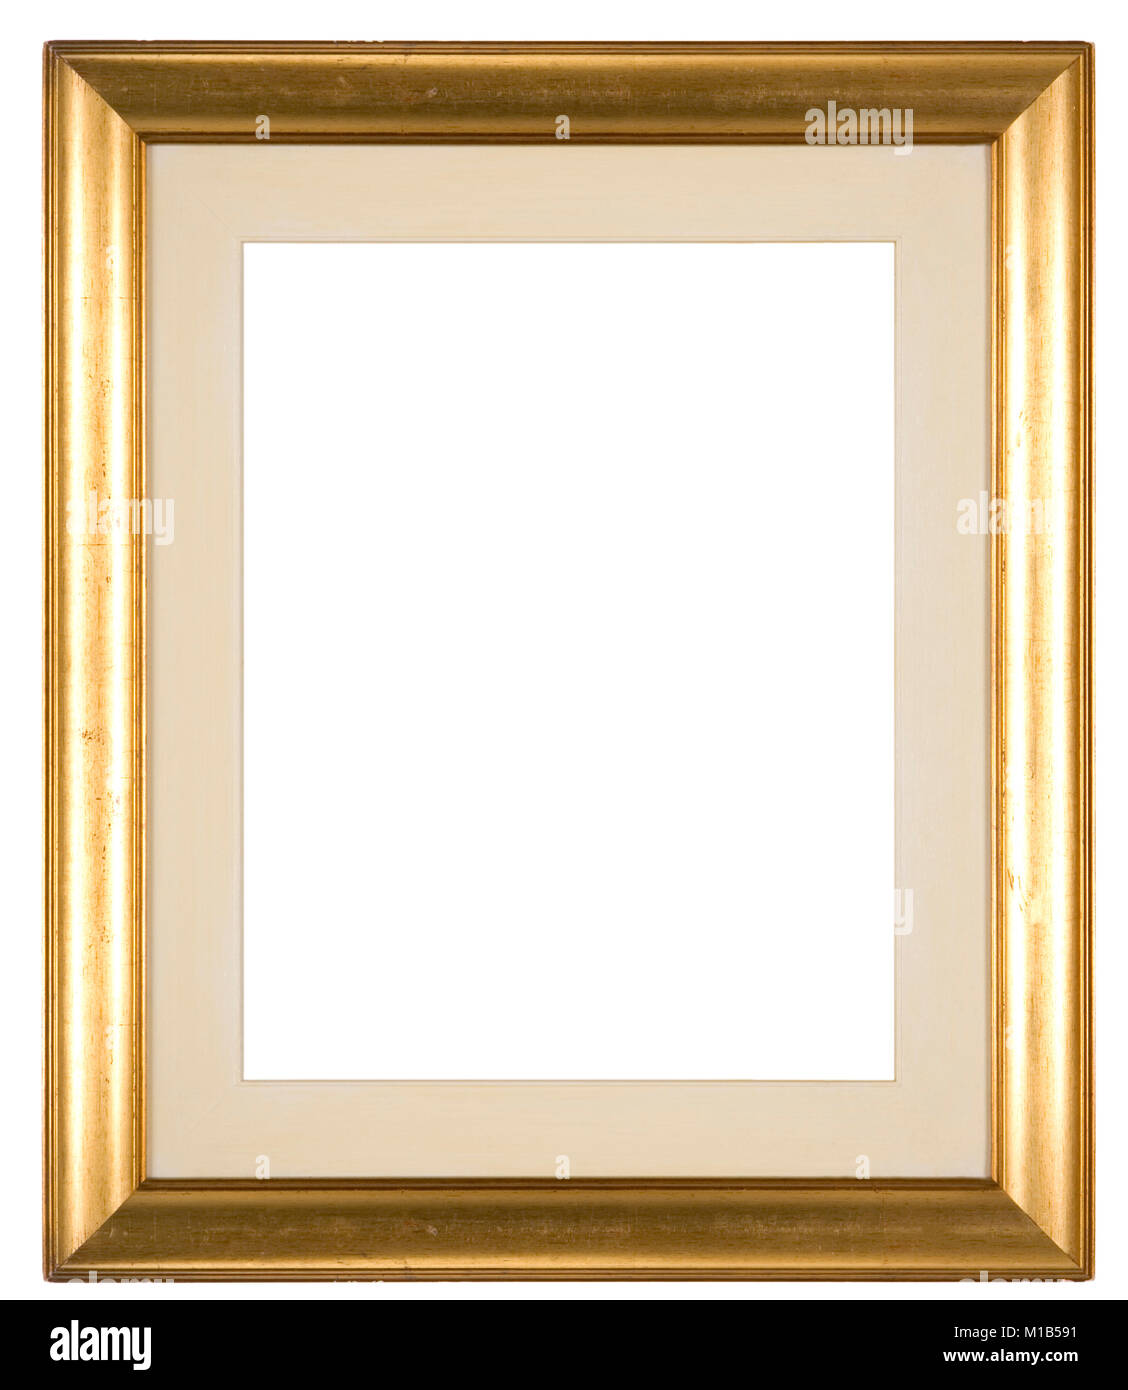 Large empty picture frame isolated on white with a distressed gold ...